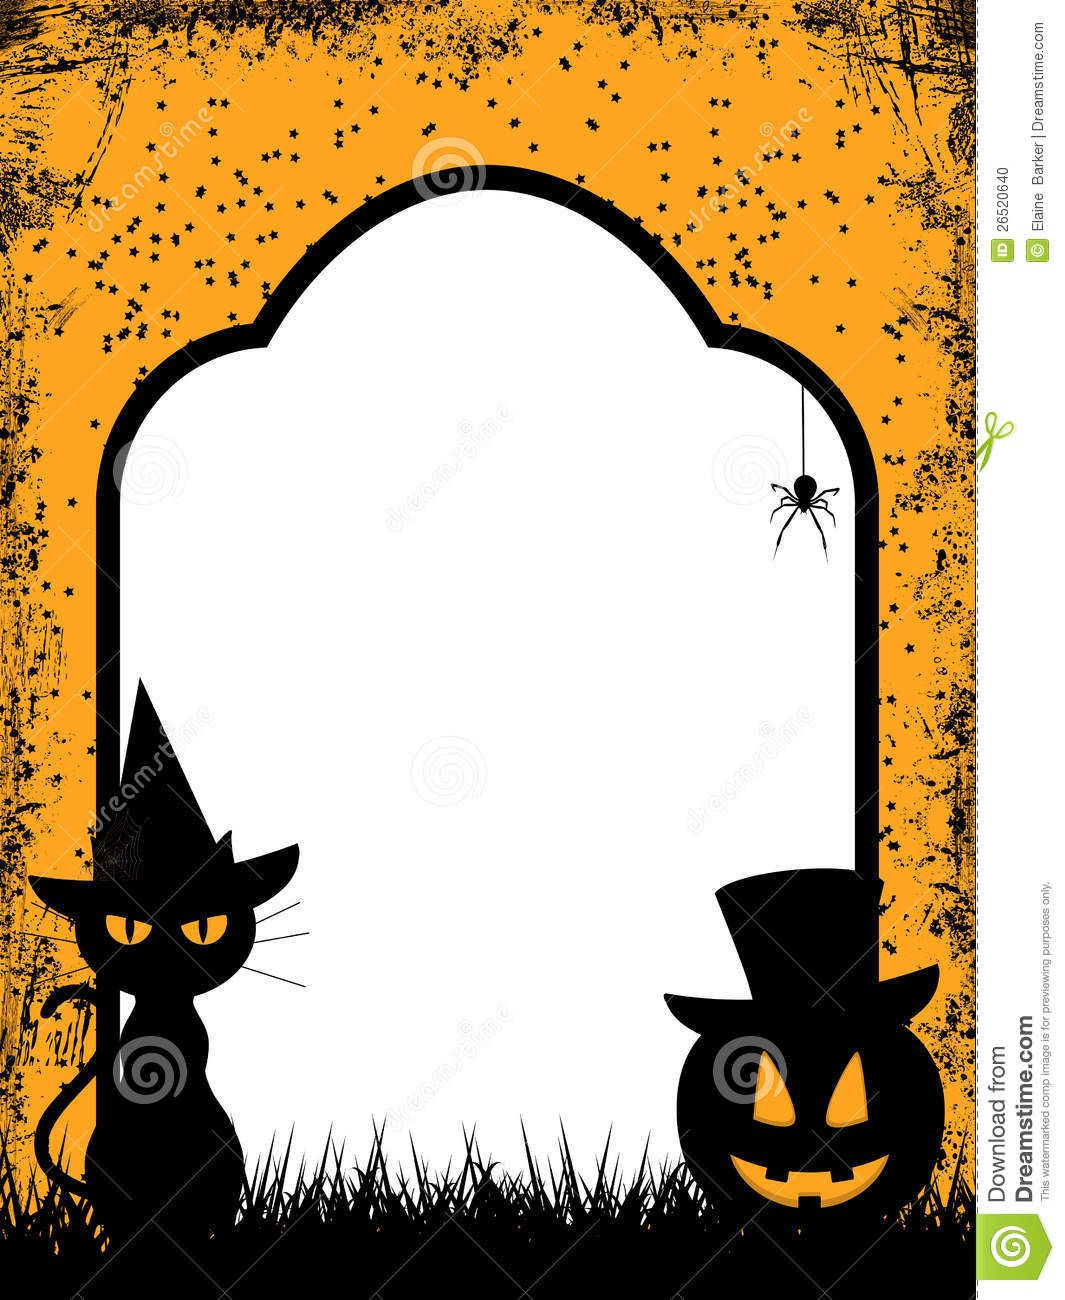 halloween border clipart Free Large Images Clip art